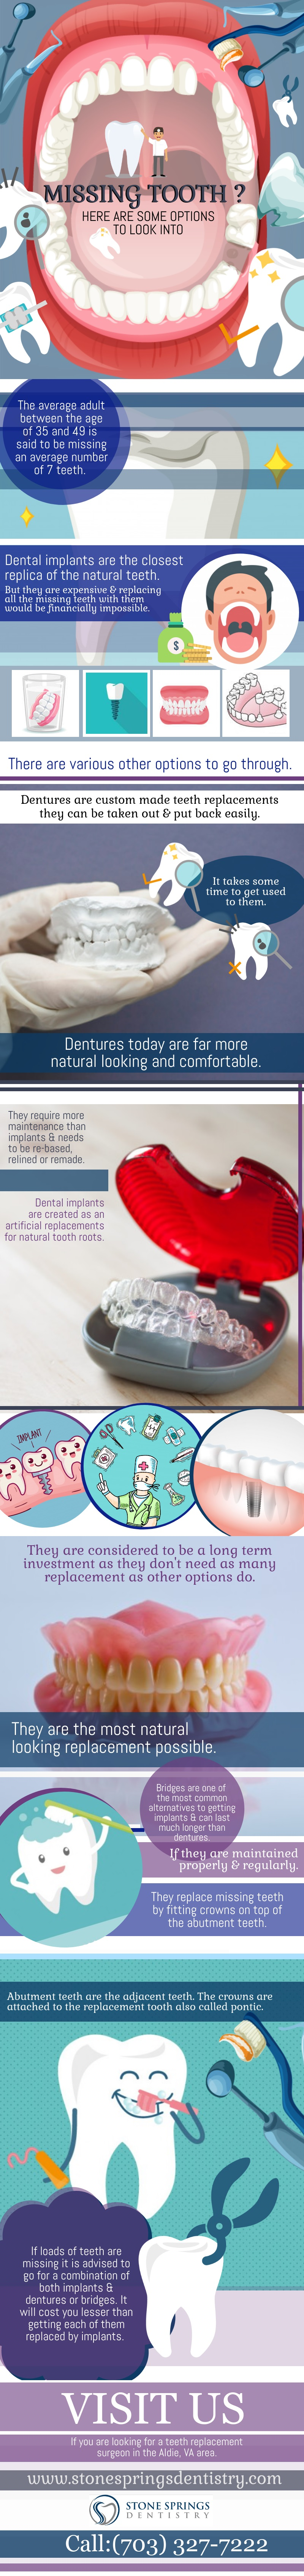 Infographic about cosmetic dentistry procedures and treatments